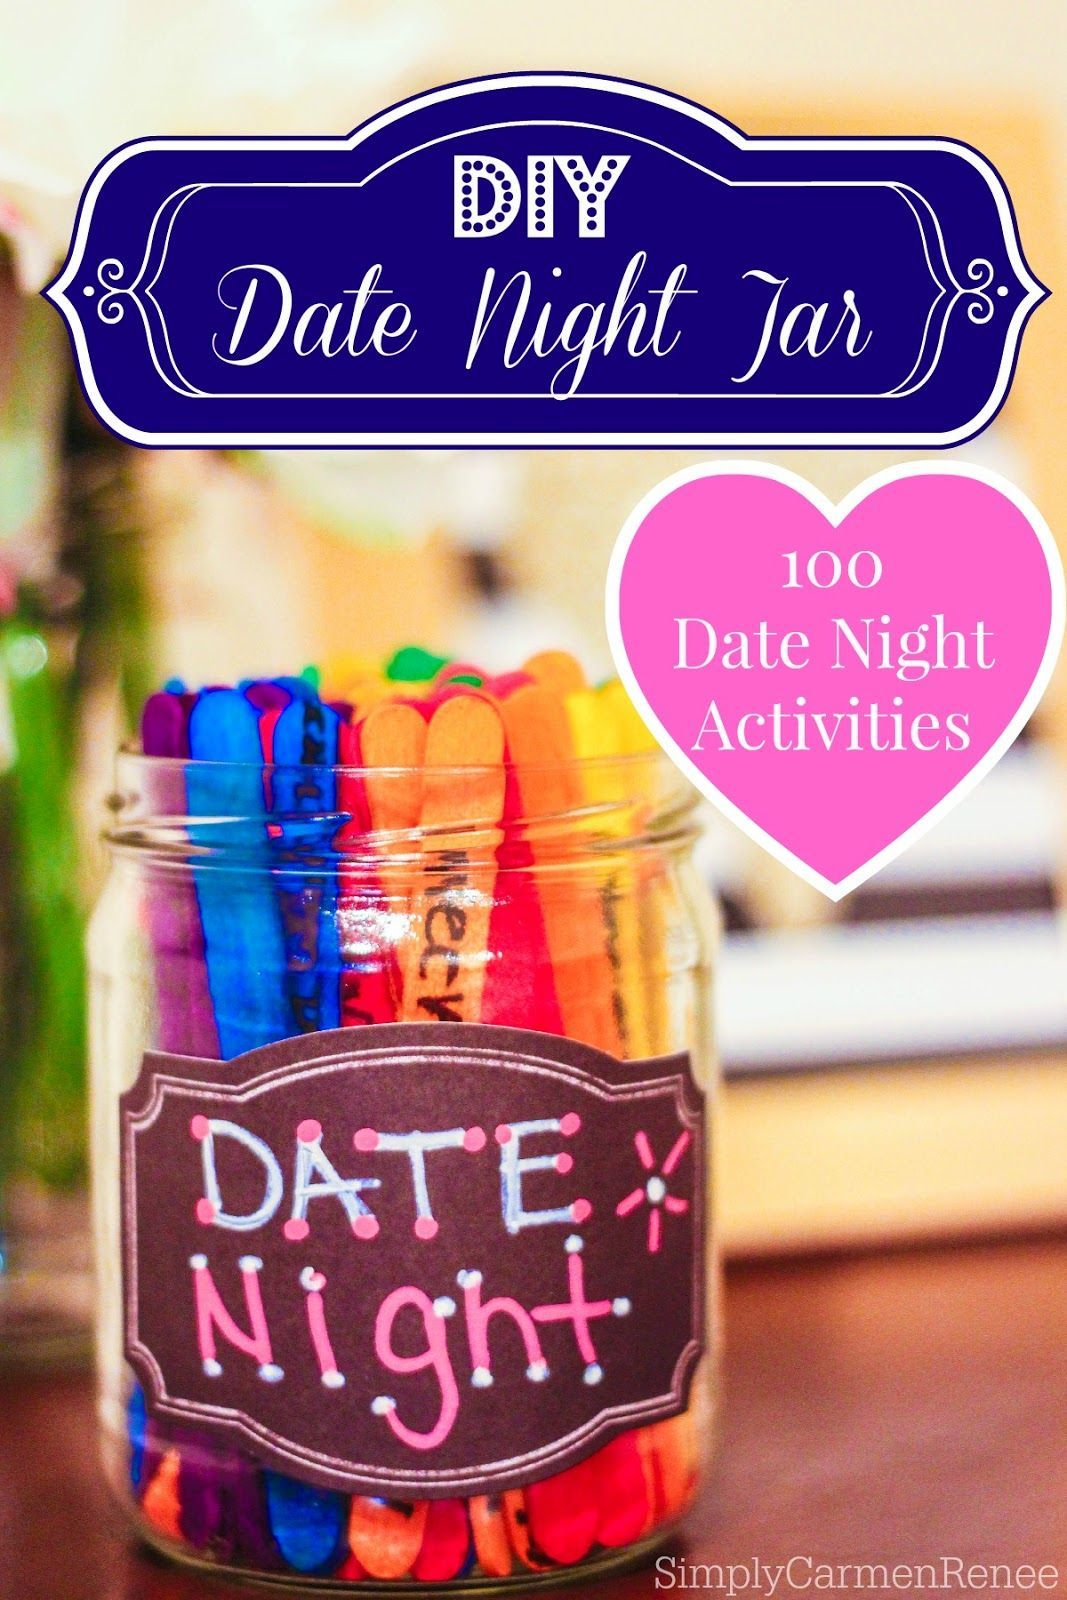 Date night jar over activities that you and your spouse can do